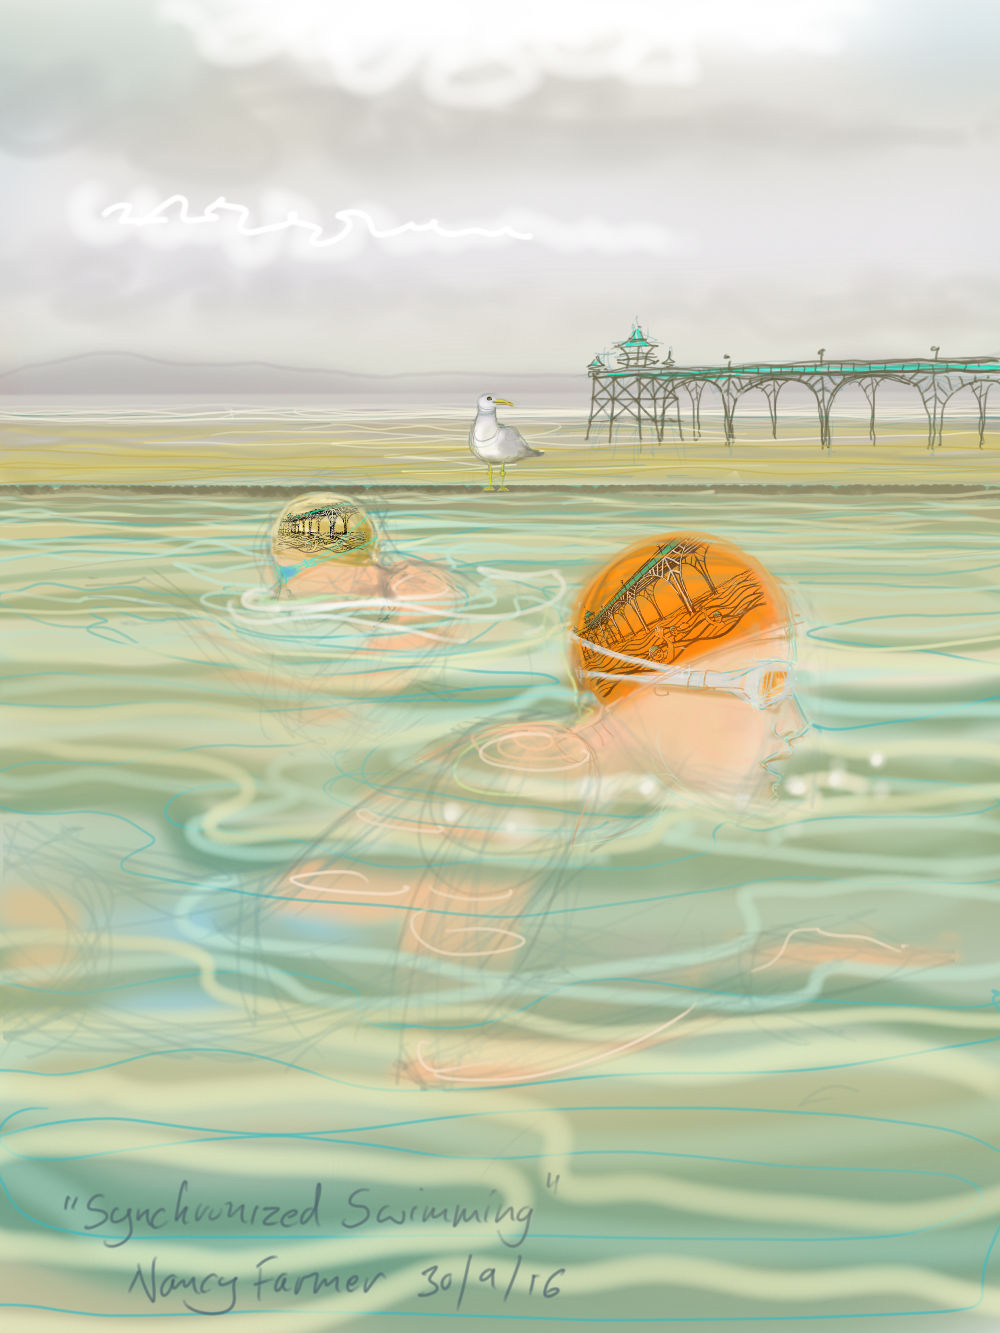 Swimming at Clevedon in our special Pier hats Swimming at Clevedon in our special Pier hats!